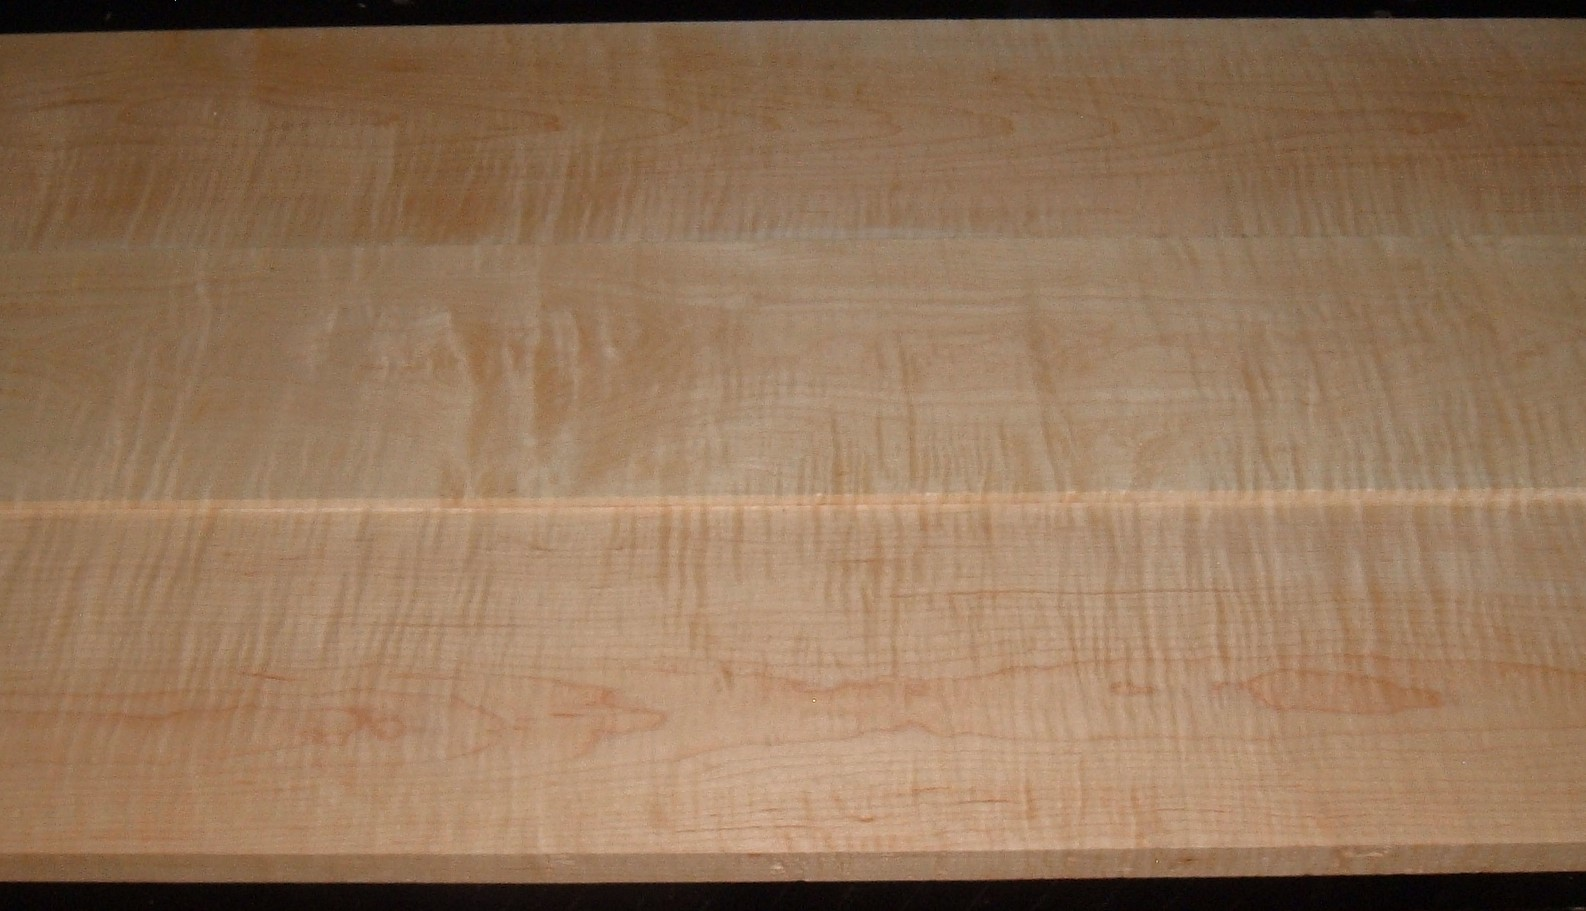 HM2006-98JJ, 3bd, 3/4x6-7/8x53, 13/16x6-3/8x53, 3/4x7x53, 4/4 Curly Tiger Hard Maple